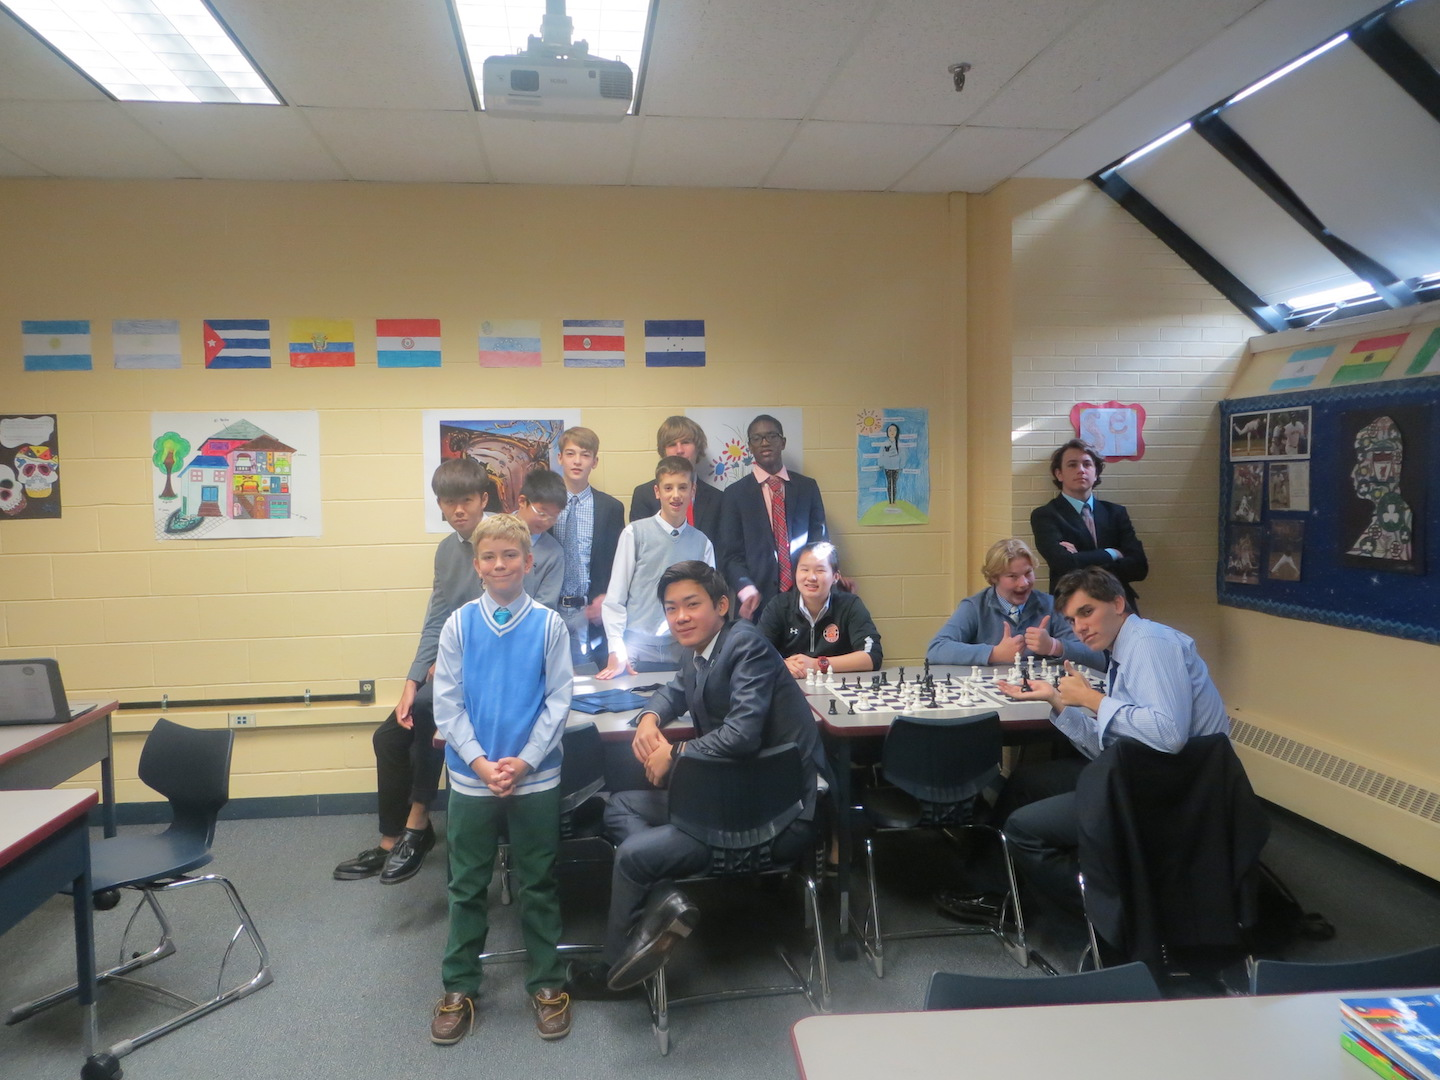 Members of Rectory's fall term (2016-17) Chess Elective led by Mr. Zerpa and Mr. Ames.